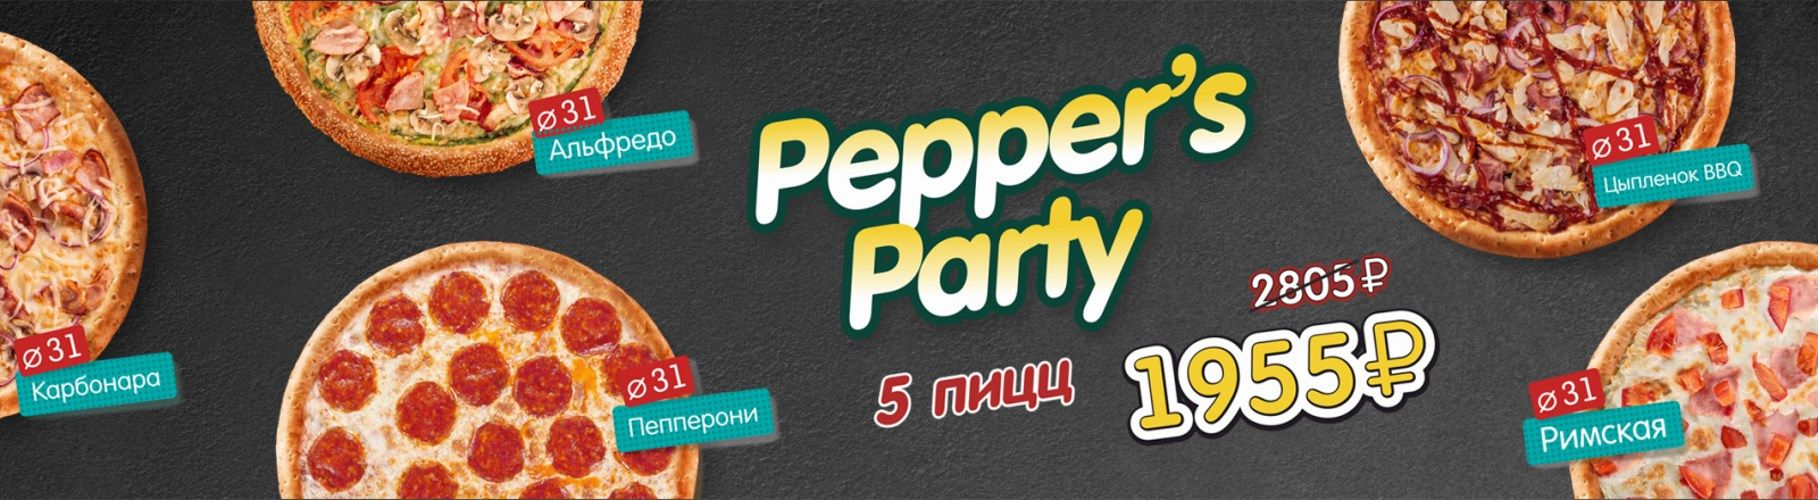 Pepper's Party